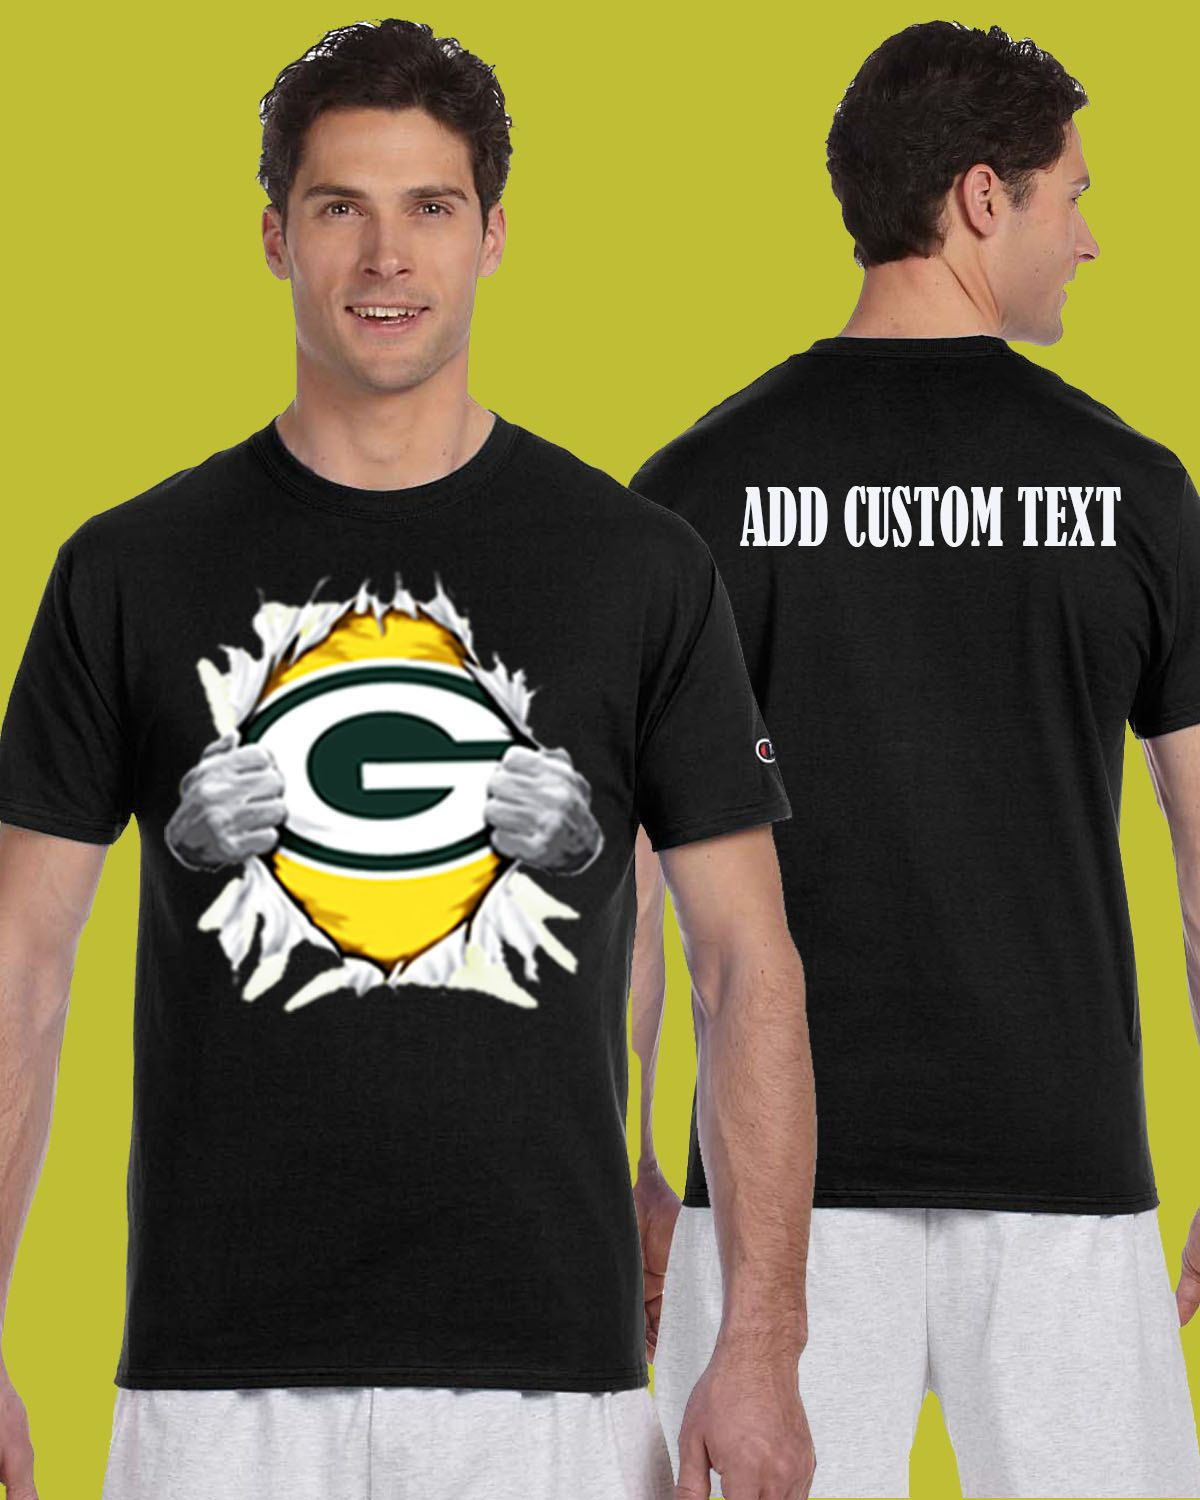 Greenbay Packers Tearing Throught Chest Superman T Shirt Add Personalized  Text On Back Shirts Clothing Sweats Mens Womens by dreamshoptime on Etsy 16316efa3